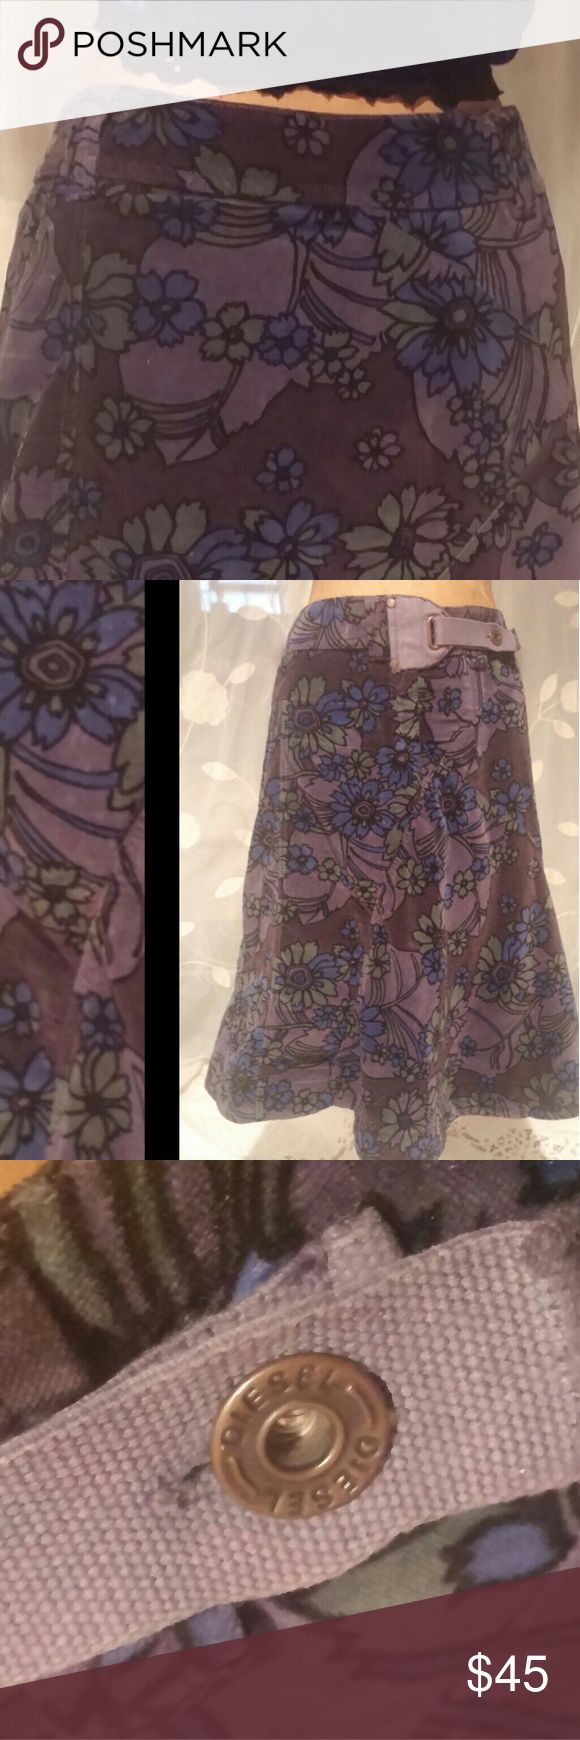 "Cute! Velvety, Floral Print ""Diesel"" Skirt. Unique Purple / Blue / Green  Length approximately 24""   In Great Condition Diesel Skirts Midi"